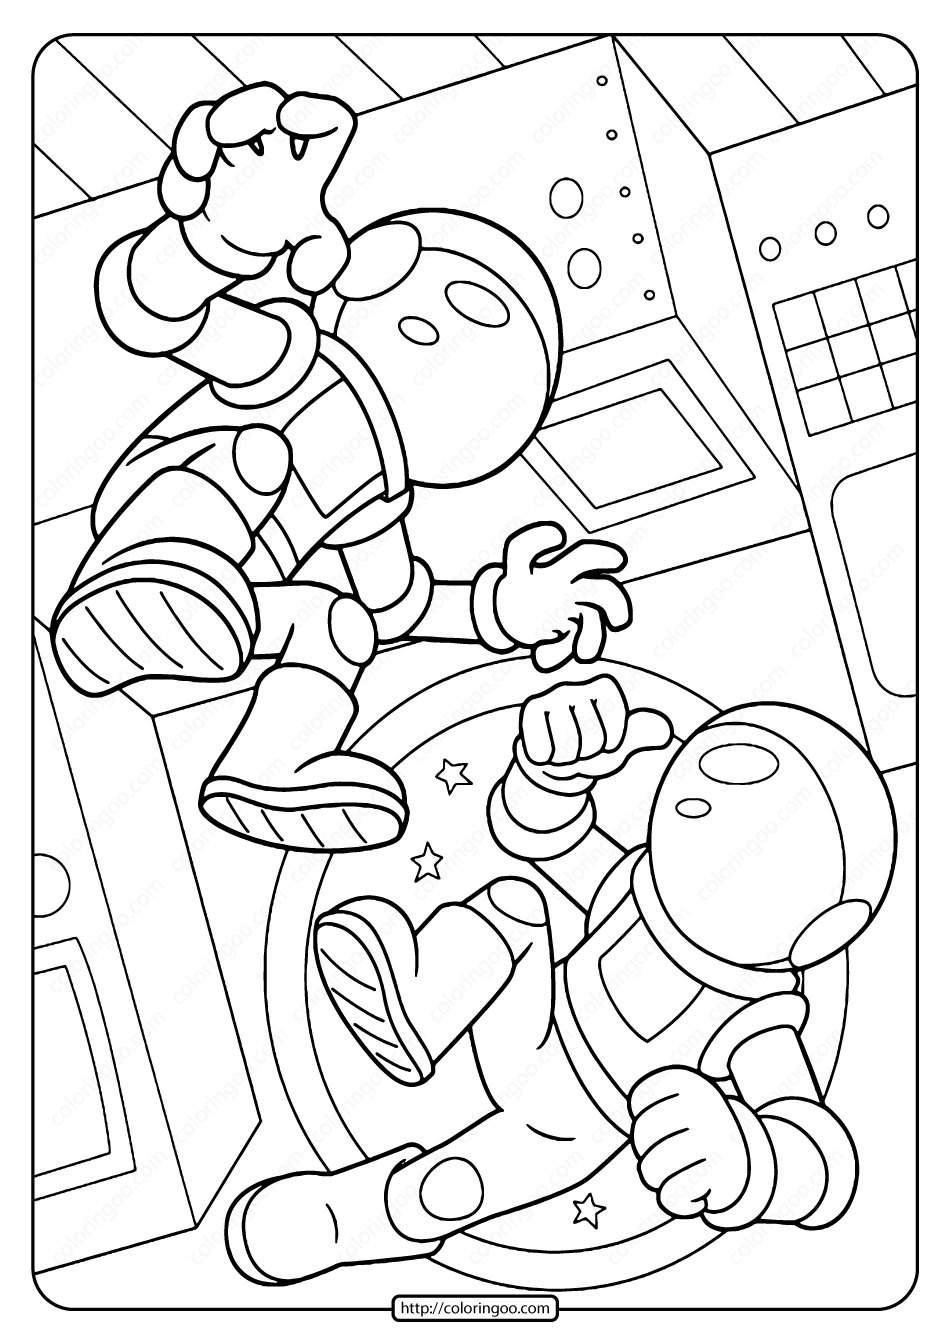 printable spaceship coloring page printable rocket ship coloring pages for kids cool2bkids printable page spaceship coloring